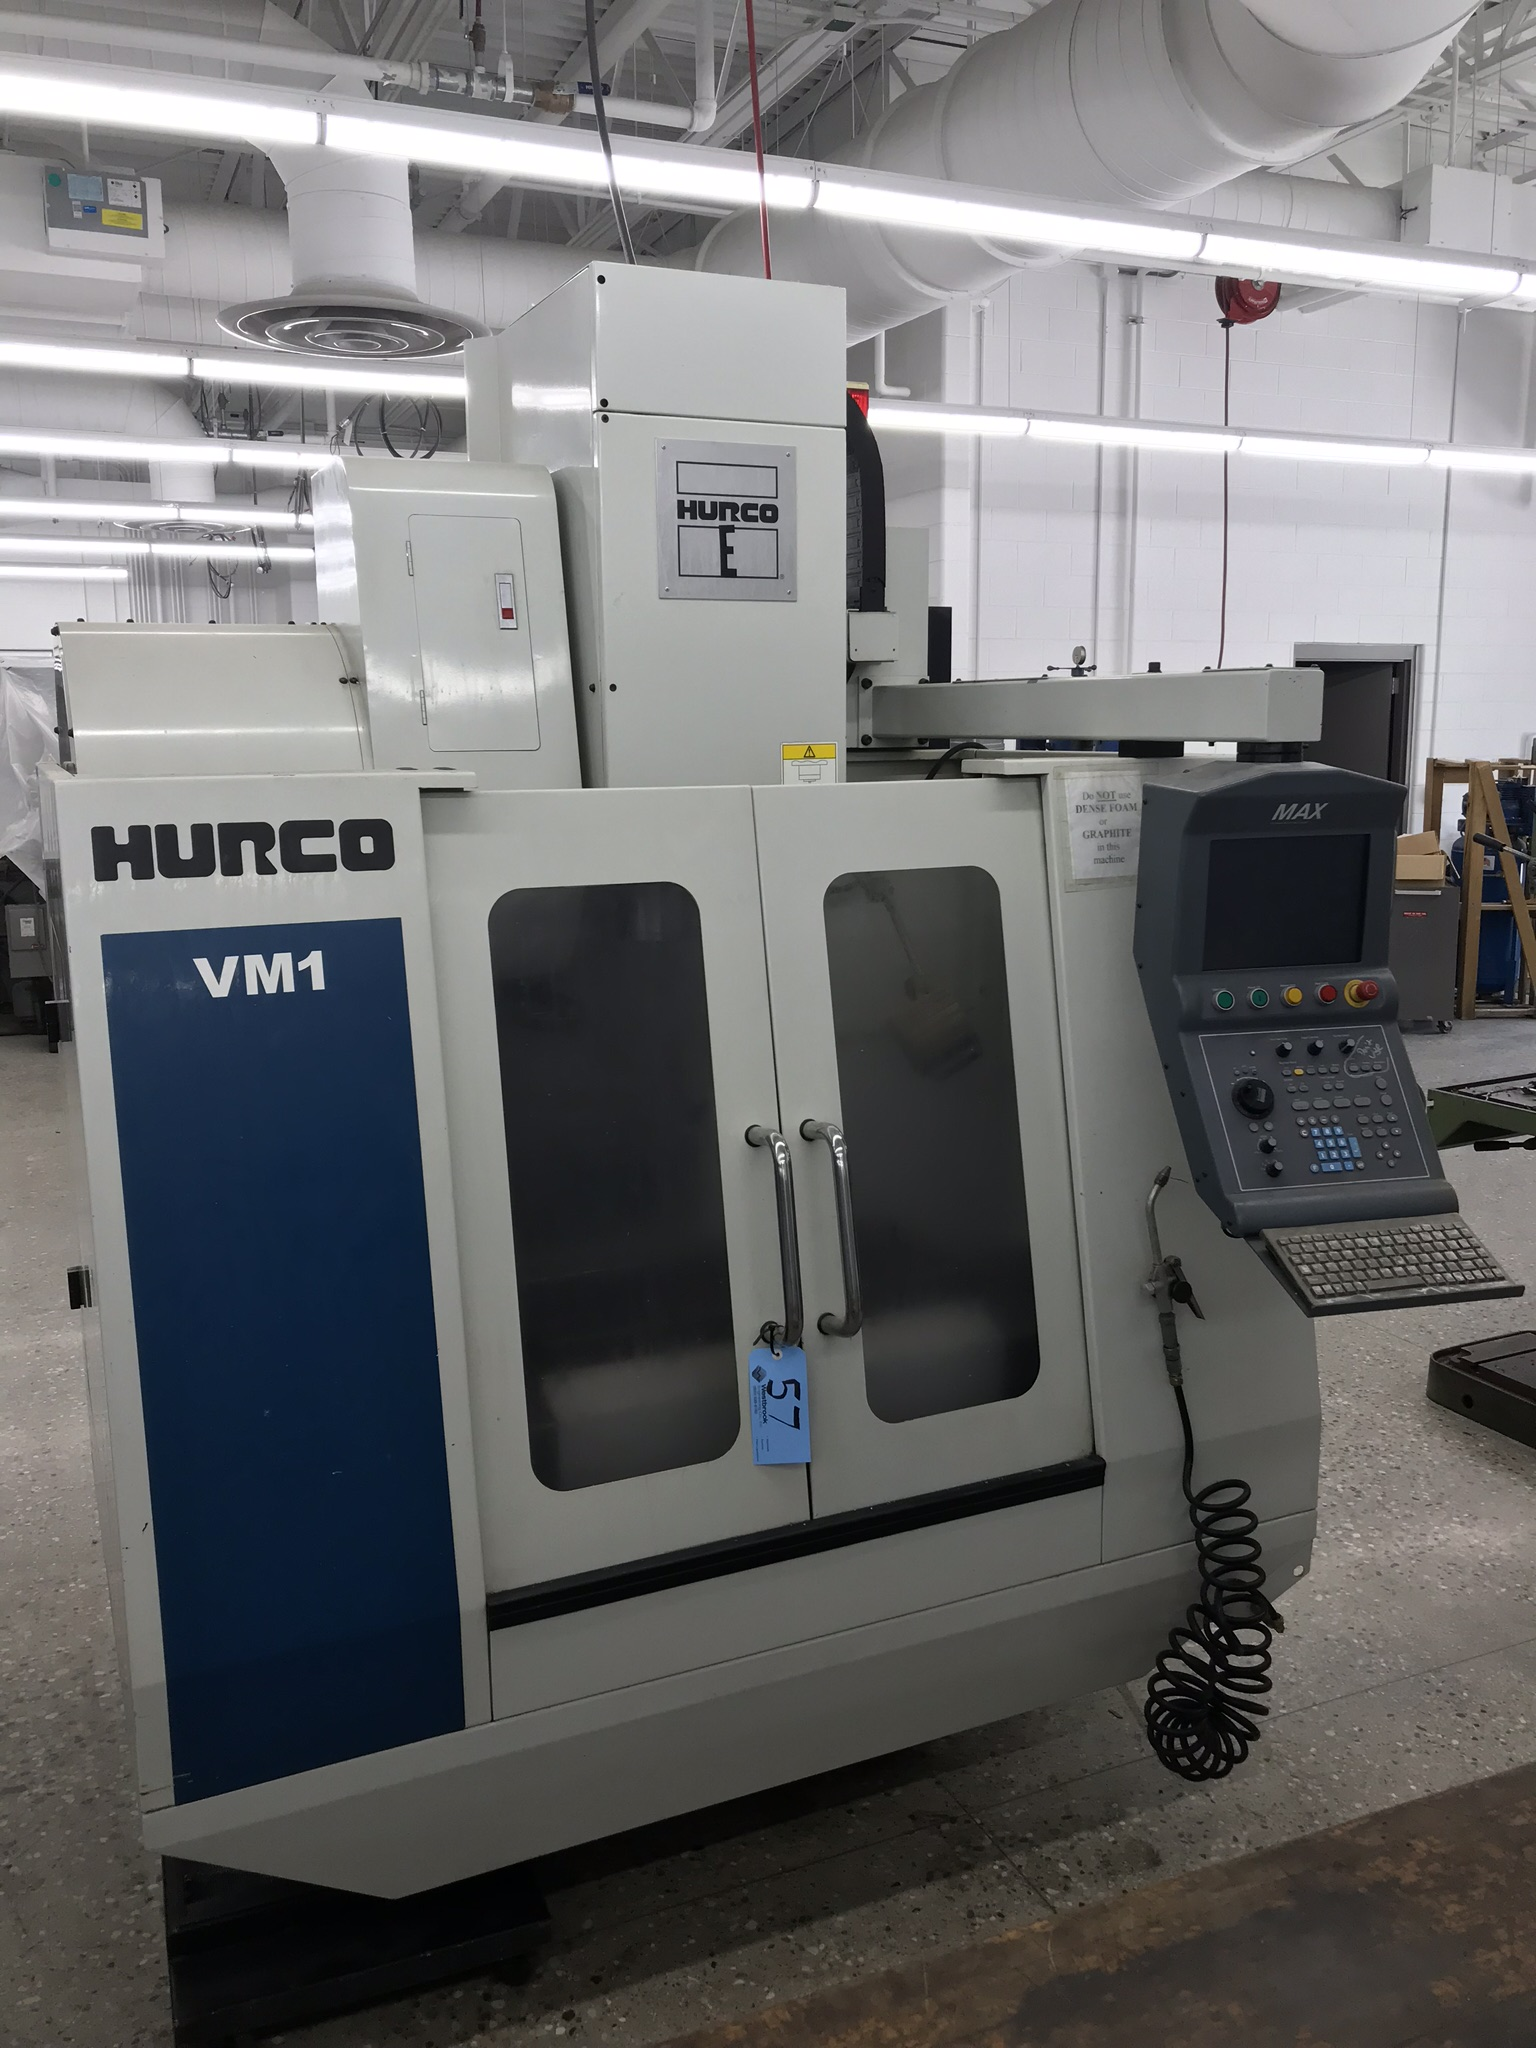 Hurco VM-1 CNC Vertical Machining Center, Spindle Recently Replaced, Approx 6,800 Hours, Max Control